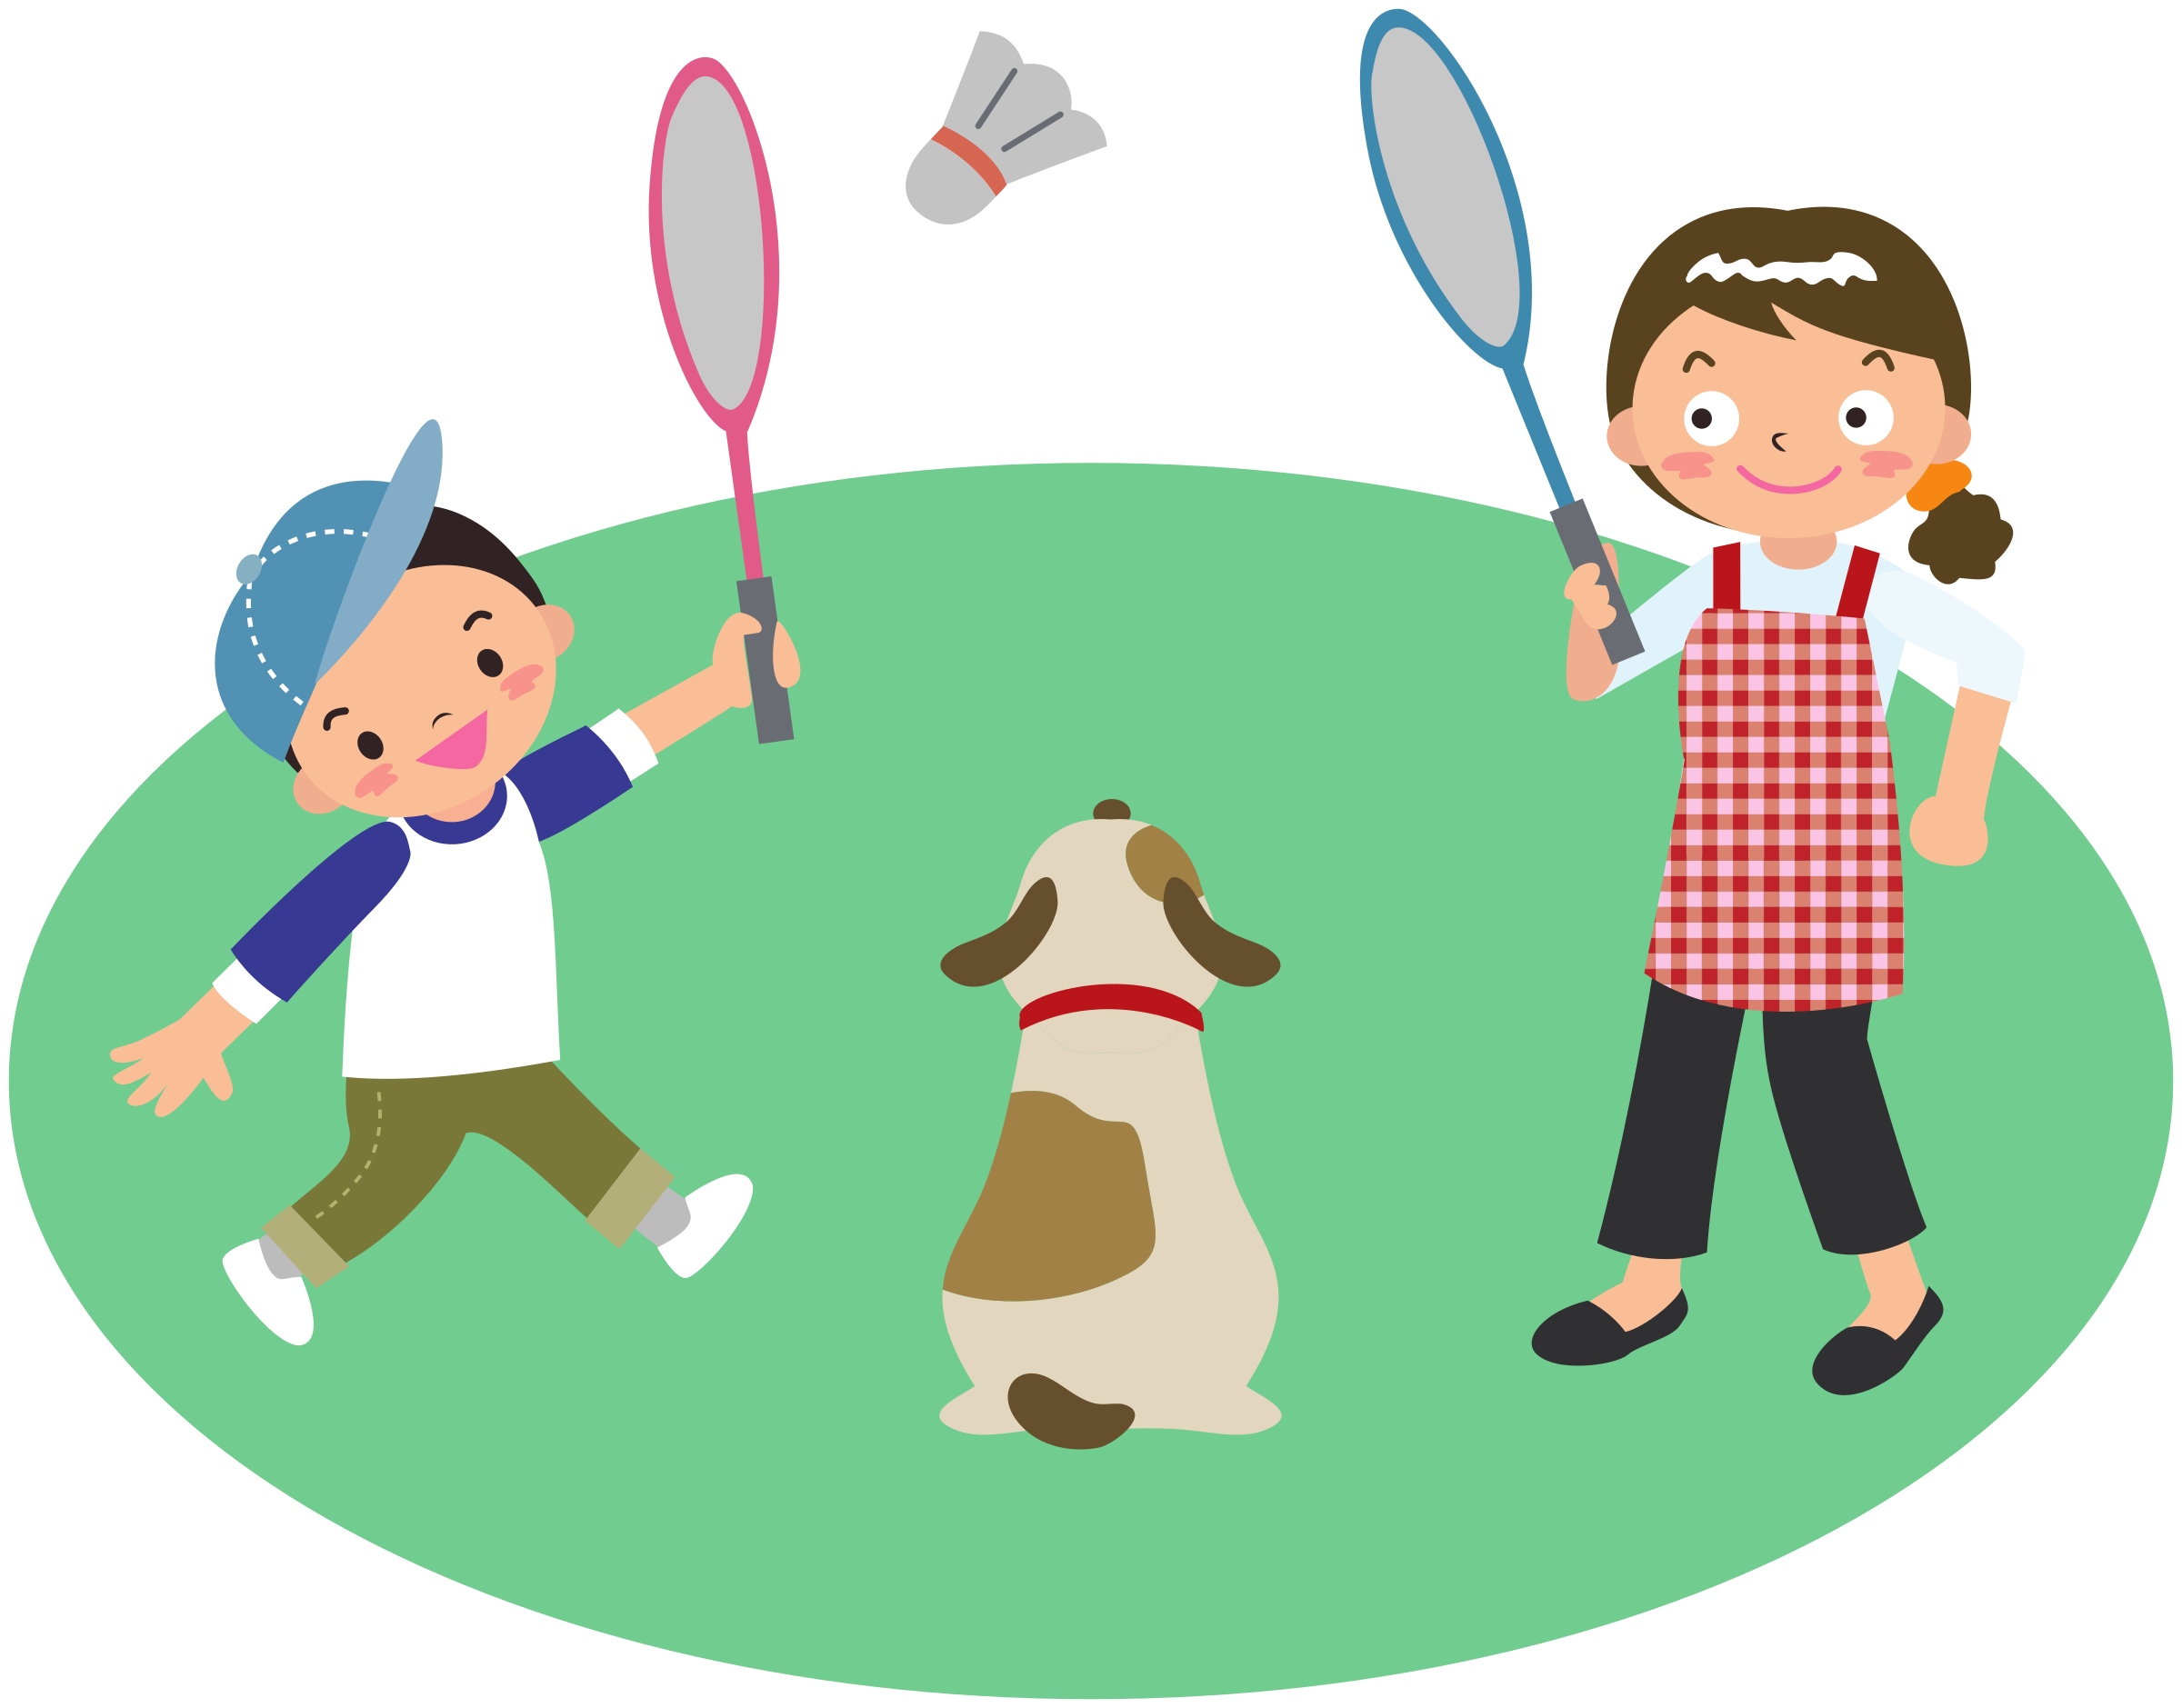 Clipart child dog. Mother plays badminton with